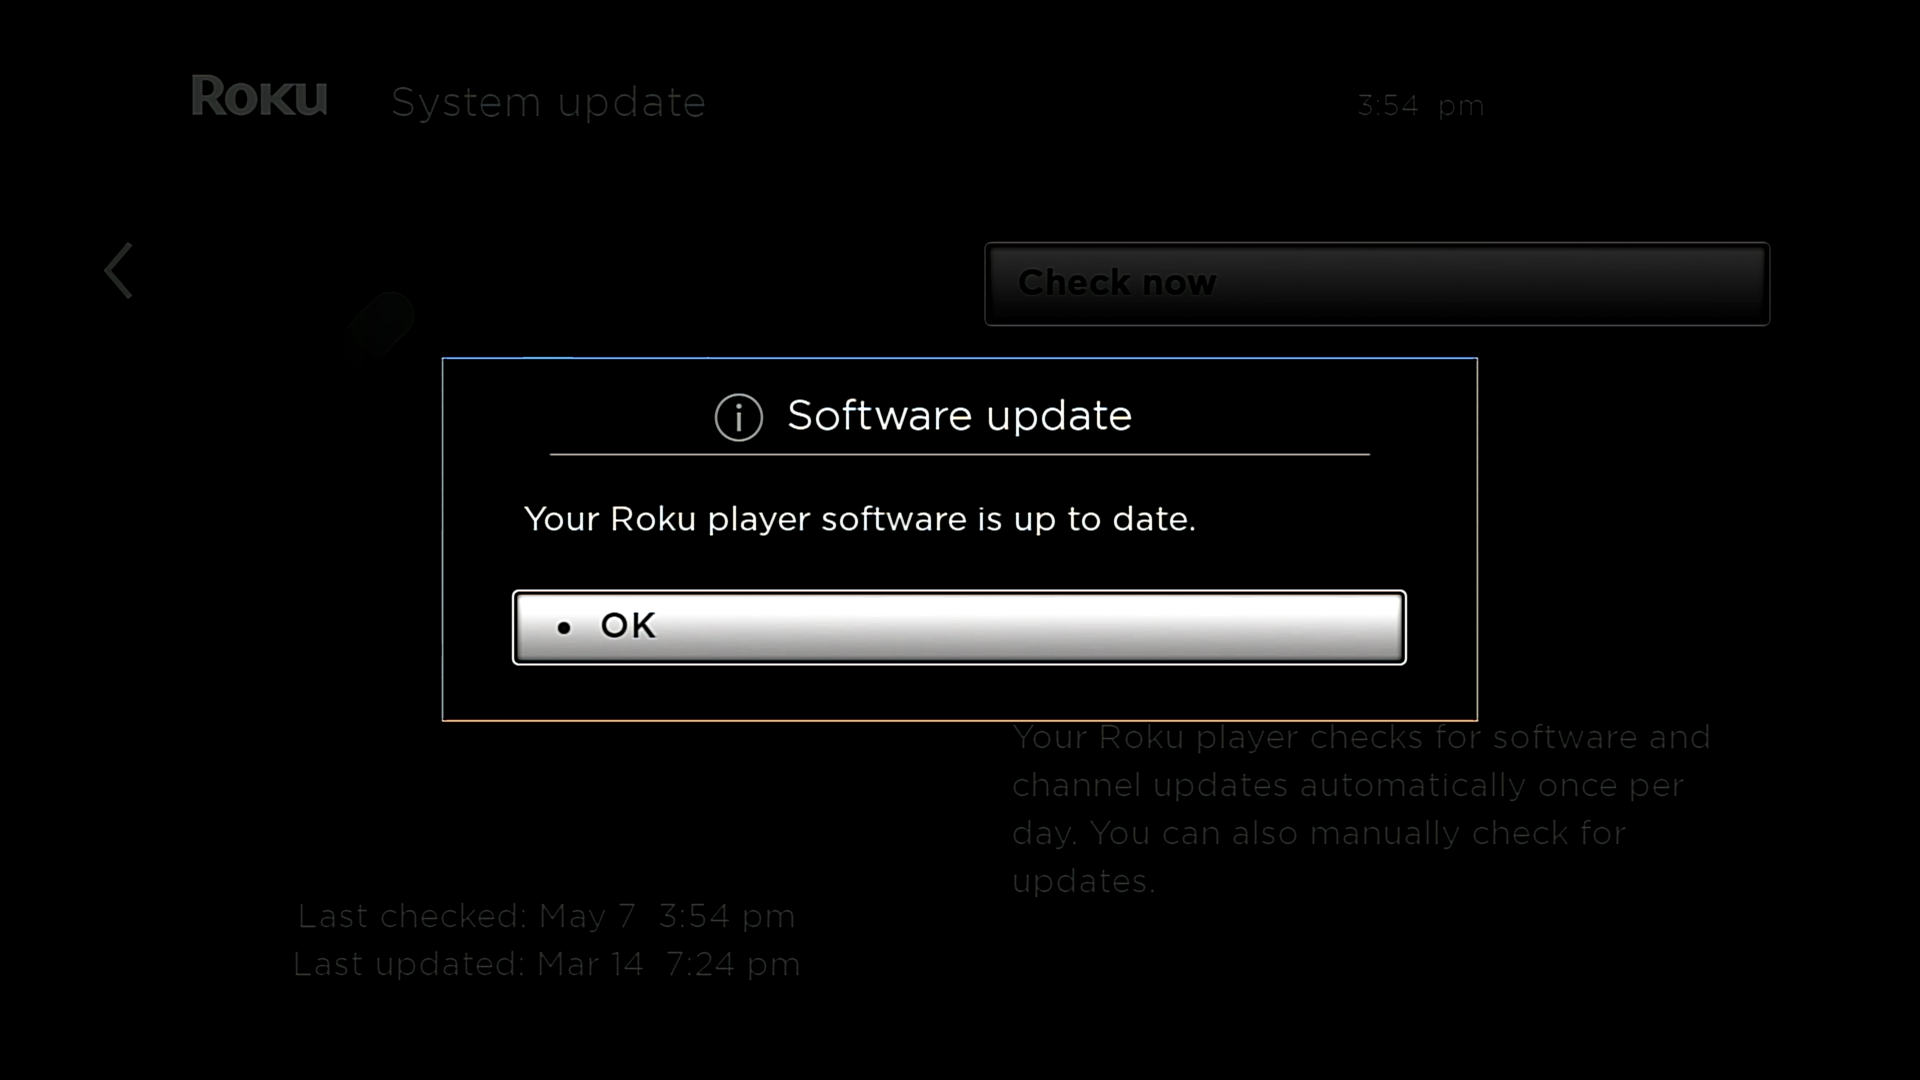 Software update showing the Roku is up to date.